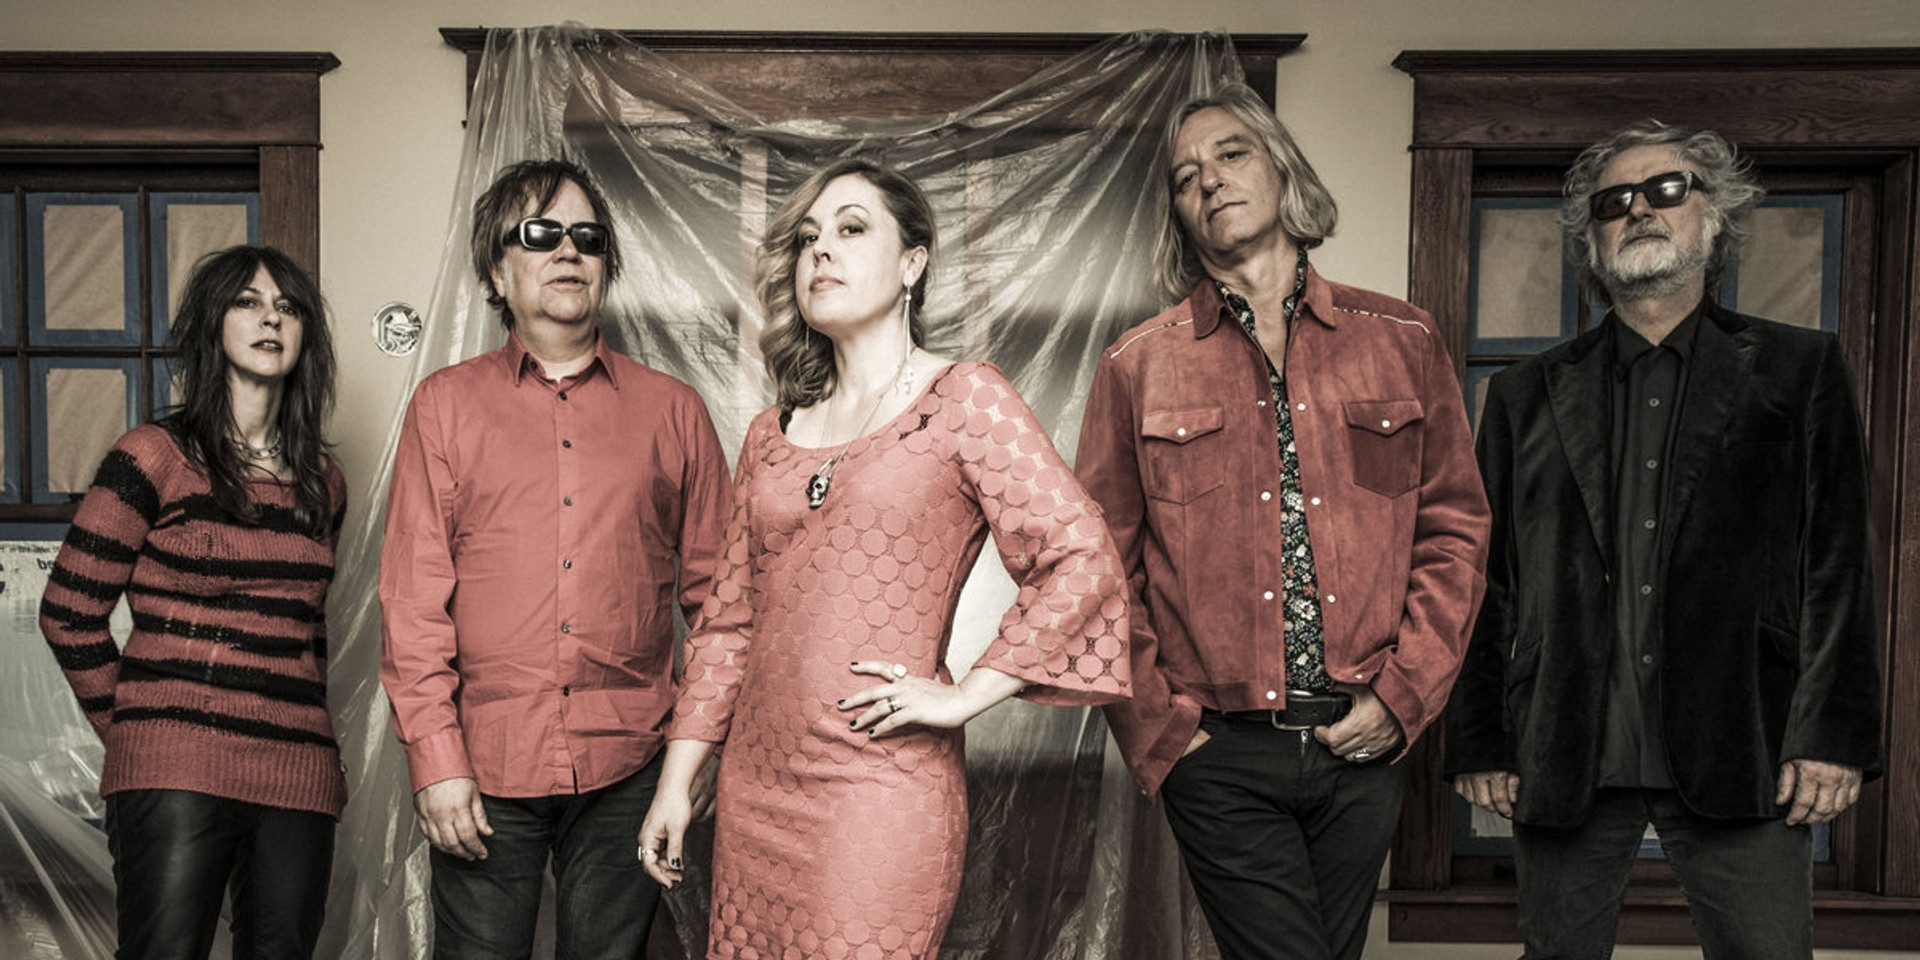 Filthy Friends, featuring members of R.E.M and Sleater-Kinney, release new track 'Last Chance County', announce new album